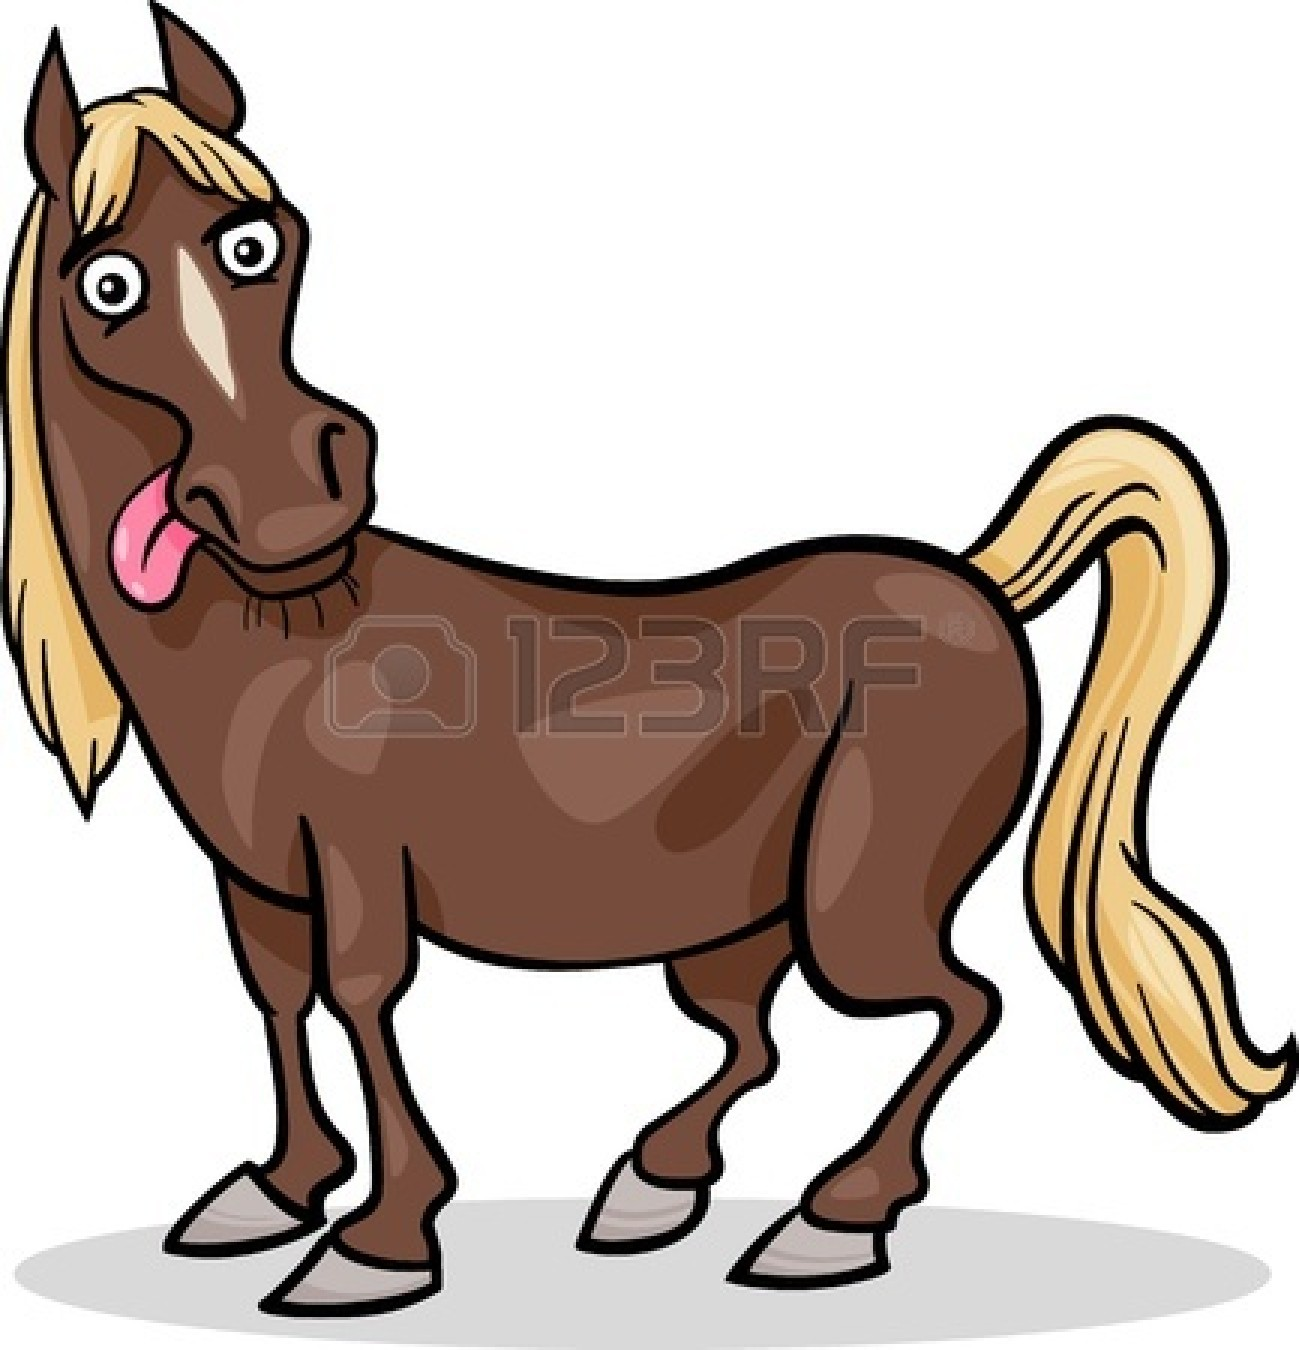 1299x1350 Horse Clipart Funny Horse